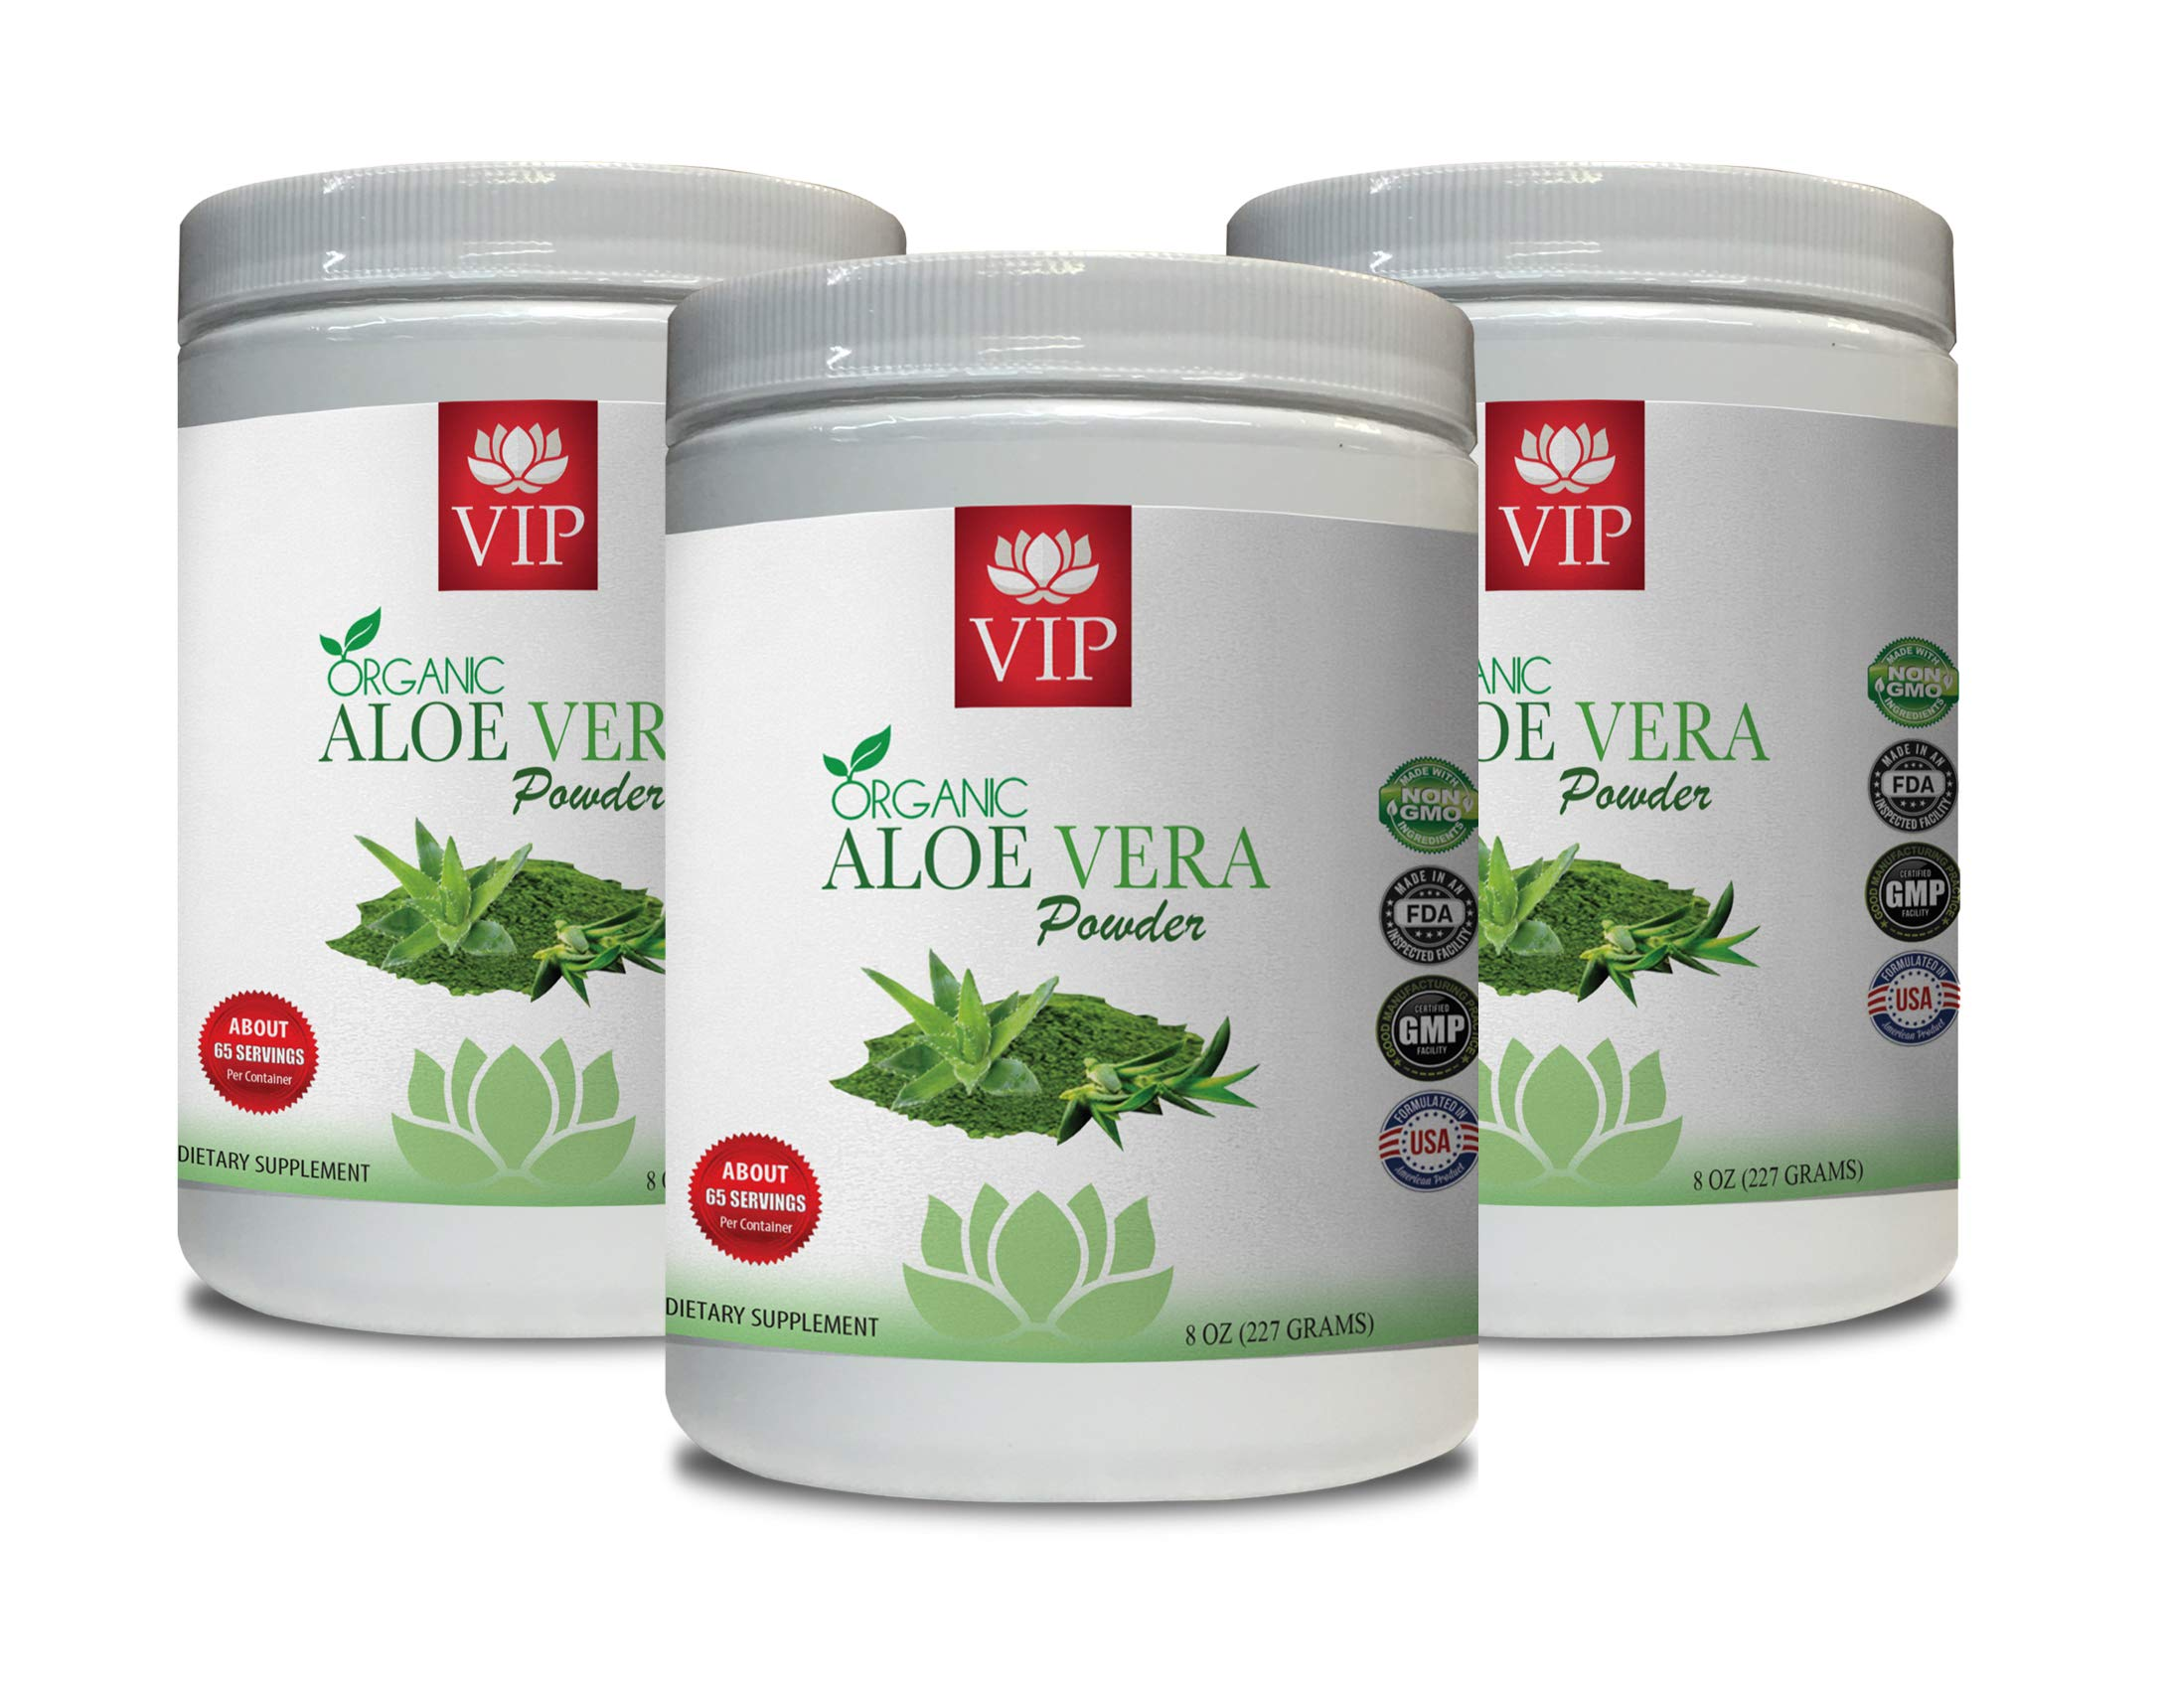 antioxidant Extreme Supplement - Aloe Vera Organic Powder - Organic Aloe Vera Bulk - 3 Cans 24 OZ (195 Servings)